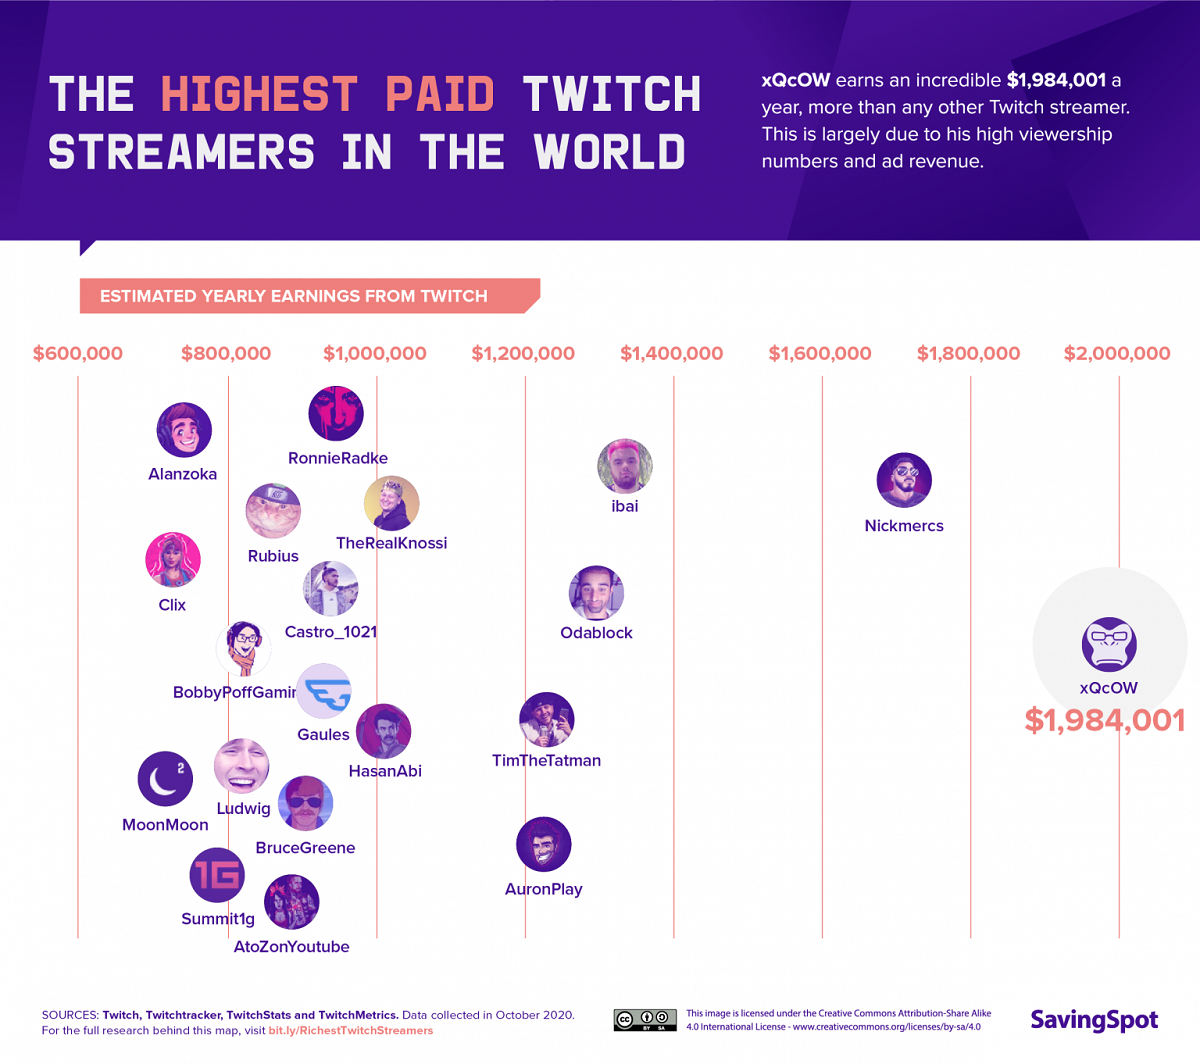 the-highest-paid-twitch-streamers-in-the-world-infographic